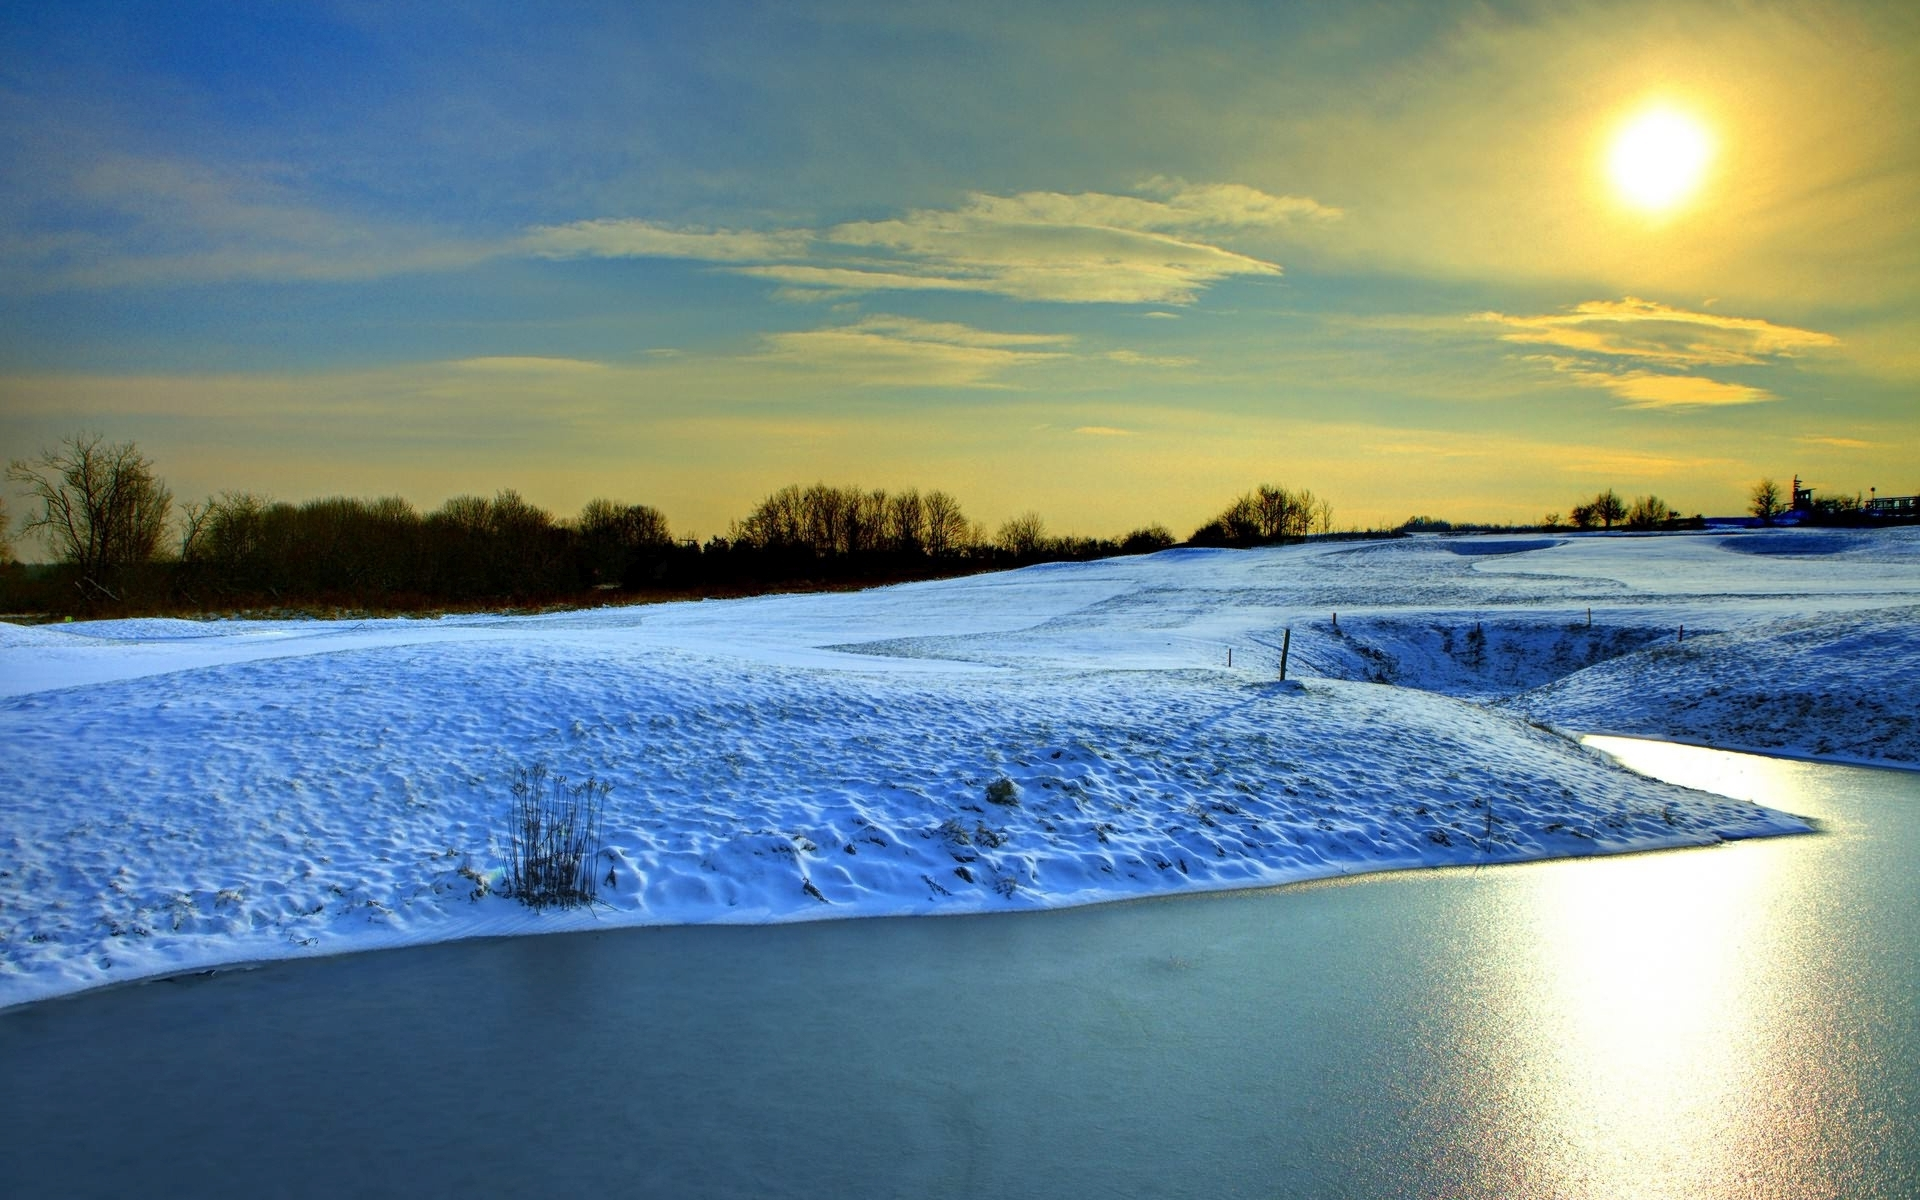 Ipad Animated Wallpaper Snowy Hills River Yellow Sunny Wallpapers Snowy Hills